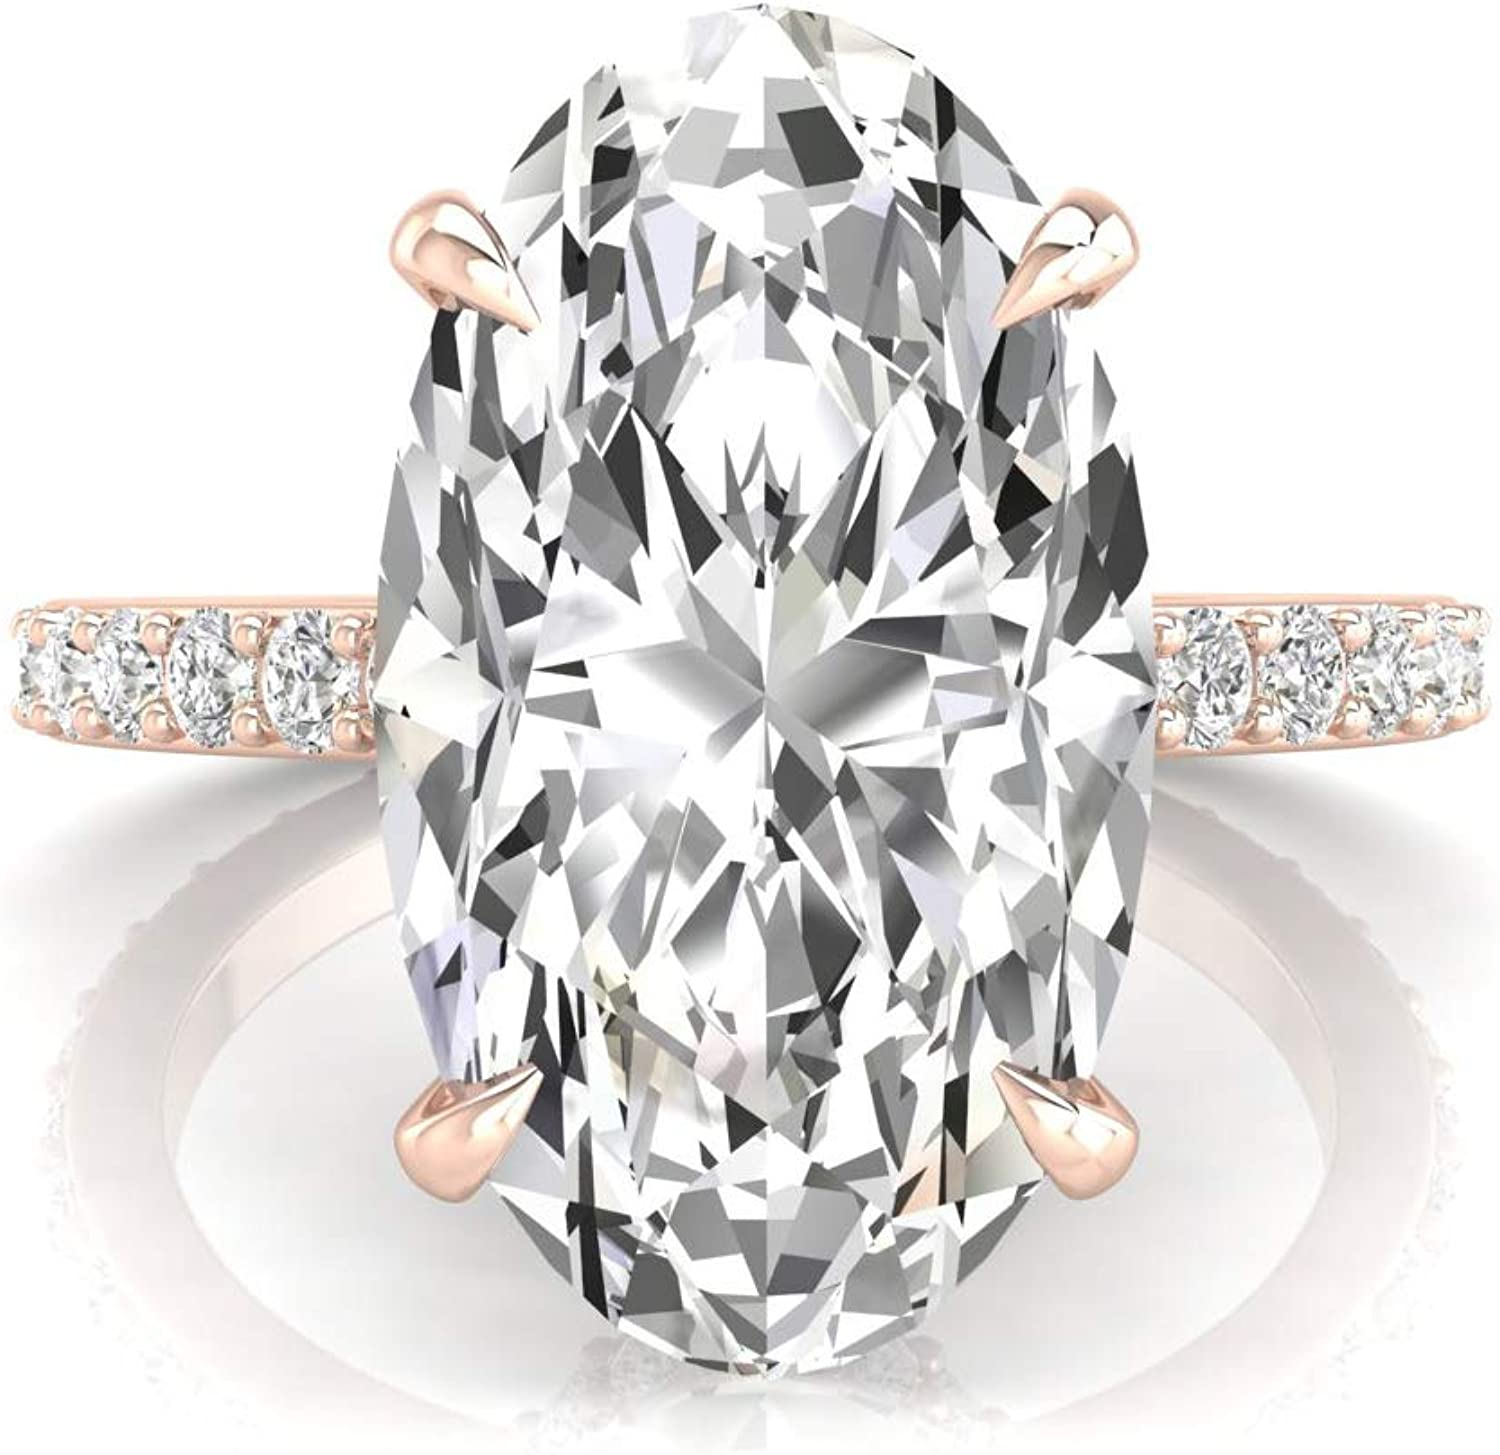 1.98 TCW Round Cut Solid 14K White Gold Gift For Her Three-Stone Christmas Sale Colorless Moissanite Gorgeous Engagement Ring